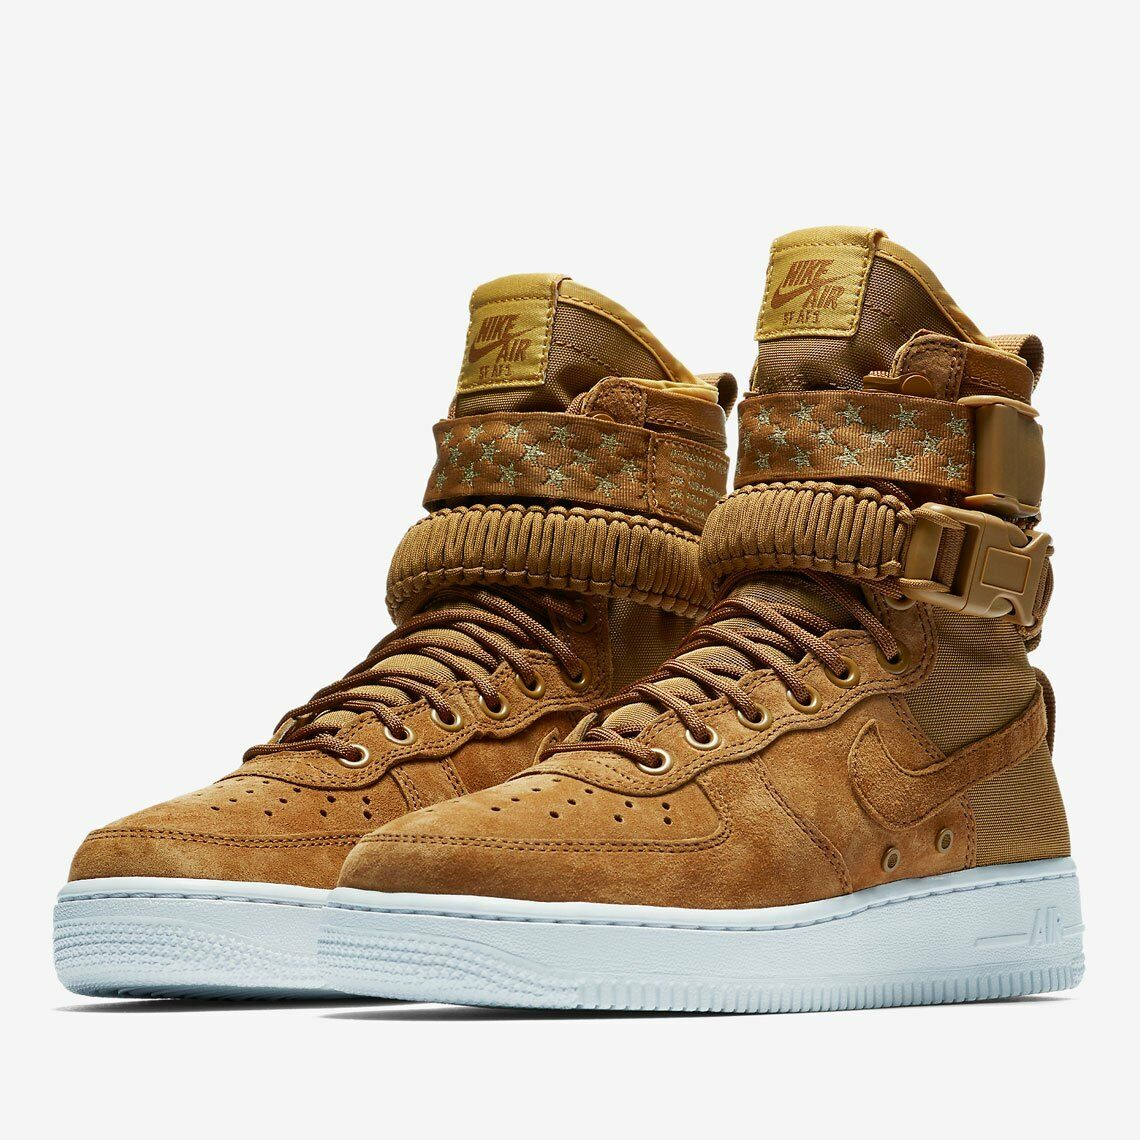 NIKE AIR FORCE 1 SF AF1 WOMEN'S BOOTS SHOES SIZE US 8 WHEAT BROWN 857872-203